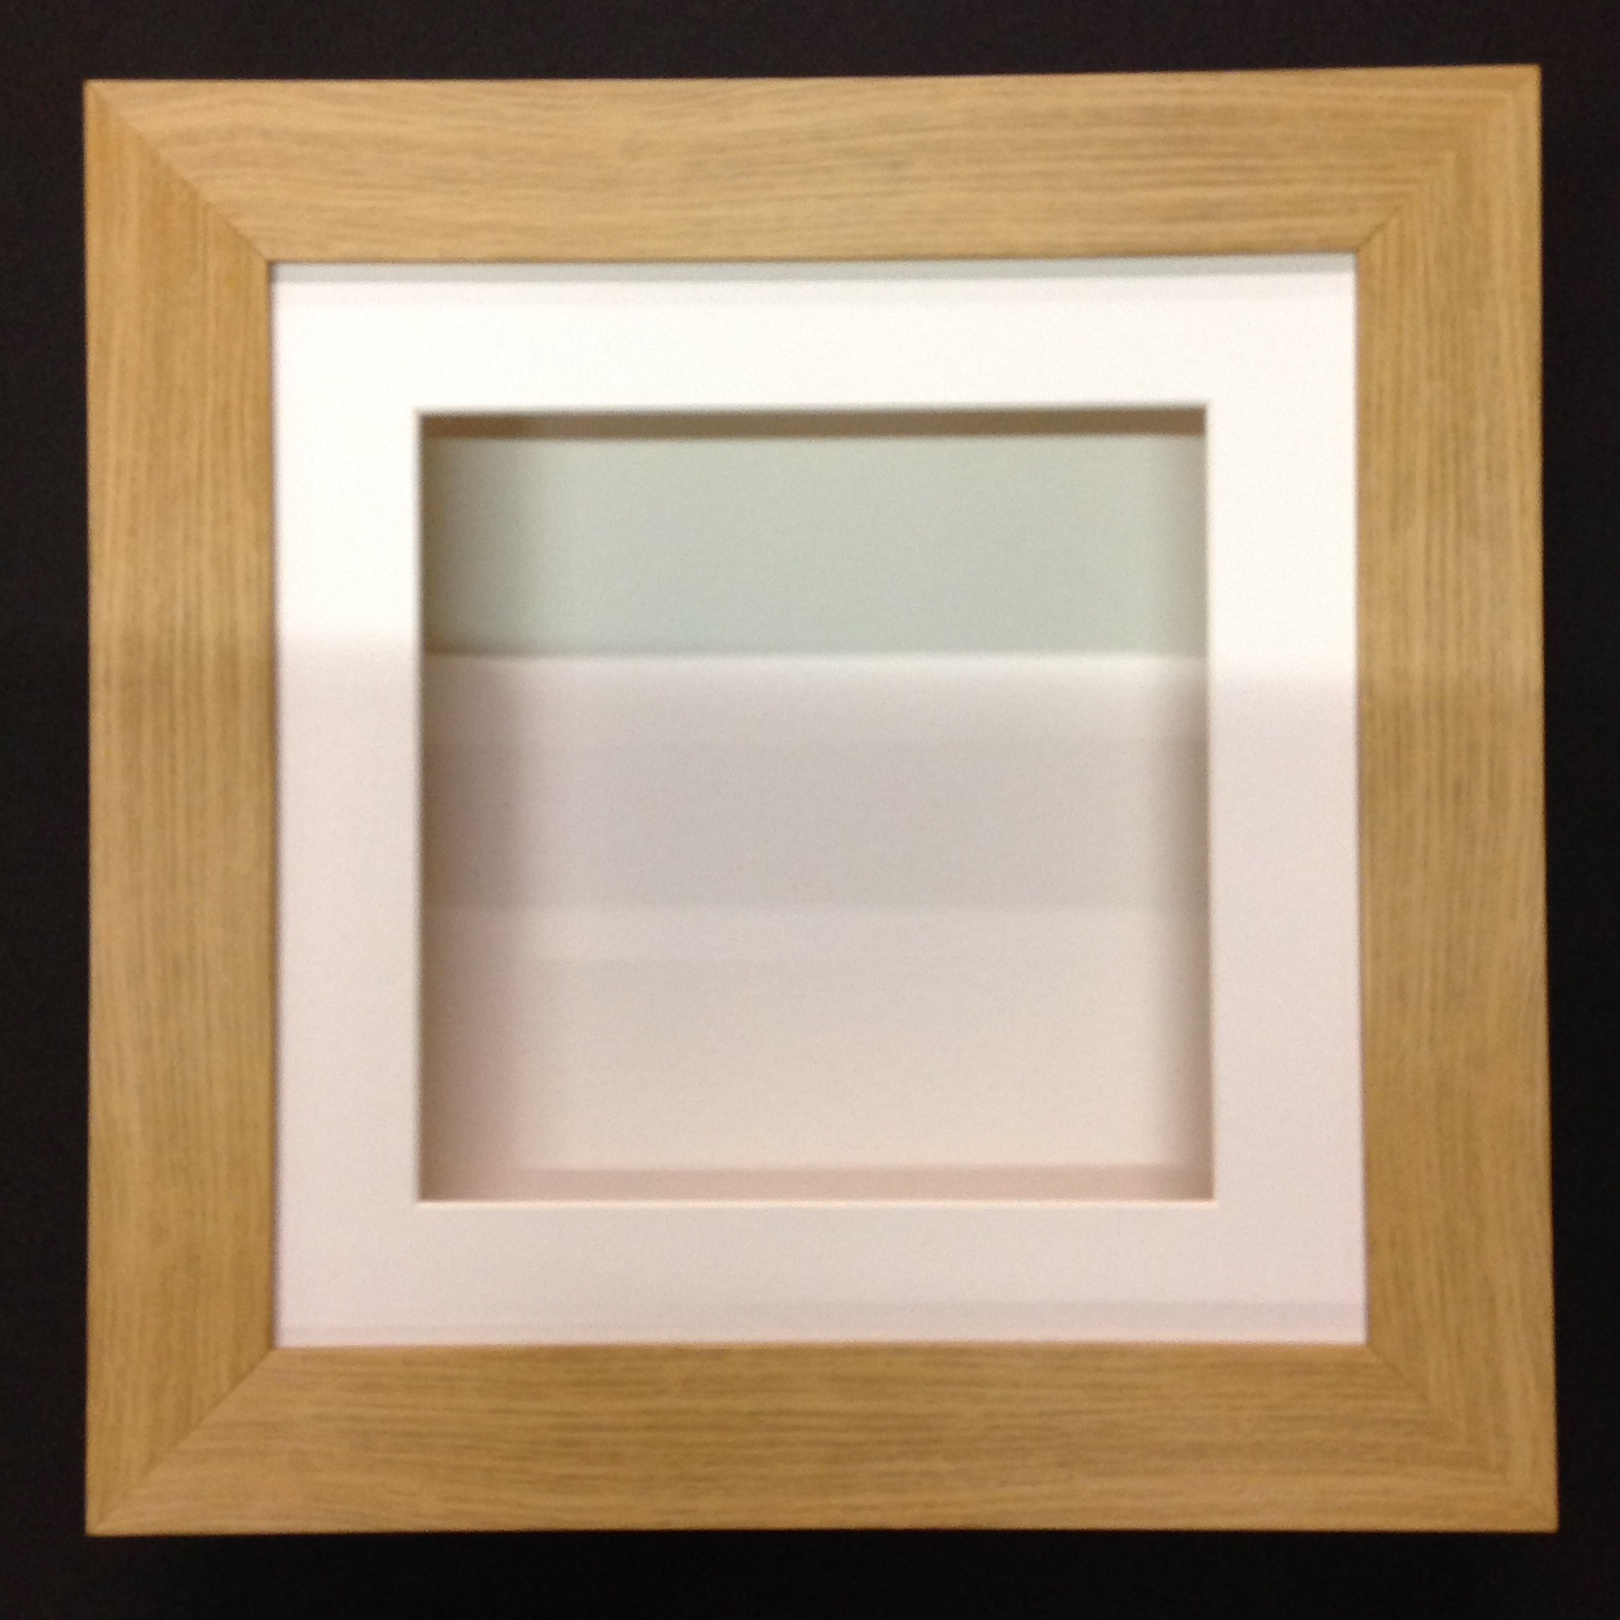 DEEP 3D SHADOW BOX,CASTS,FLOWERS,MEDALS,3D FRAMING 10x10 BRUSHED SILVER 55mm